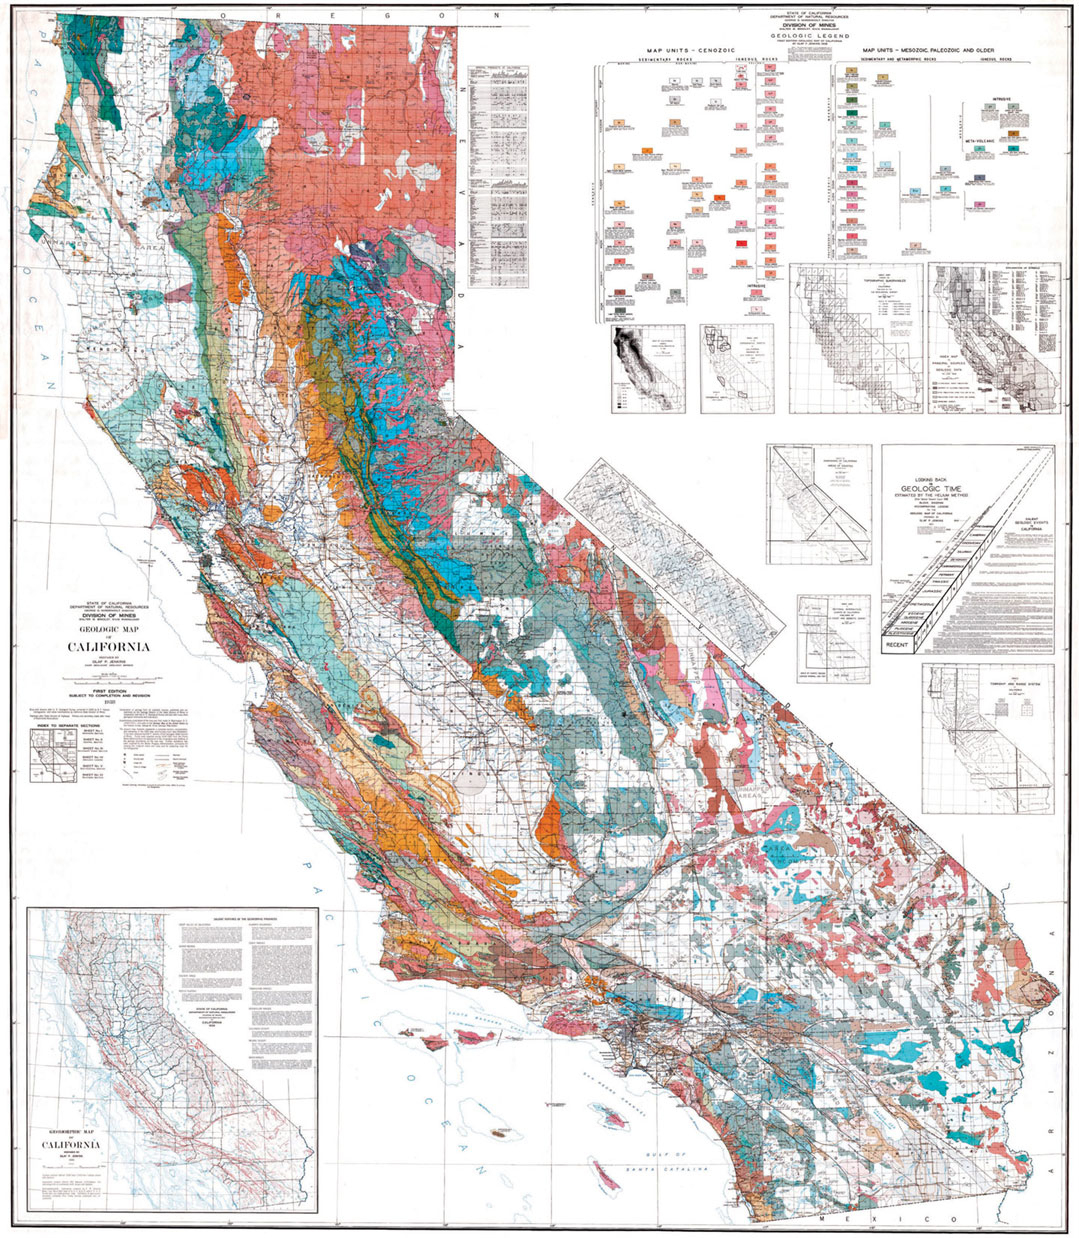 Cageomap Page Large Map Of Geological Map Of California - Klipy - California Geological Survey Maps